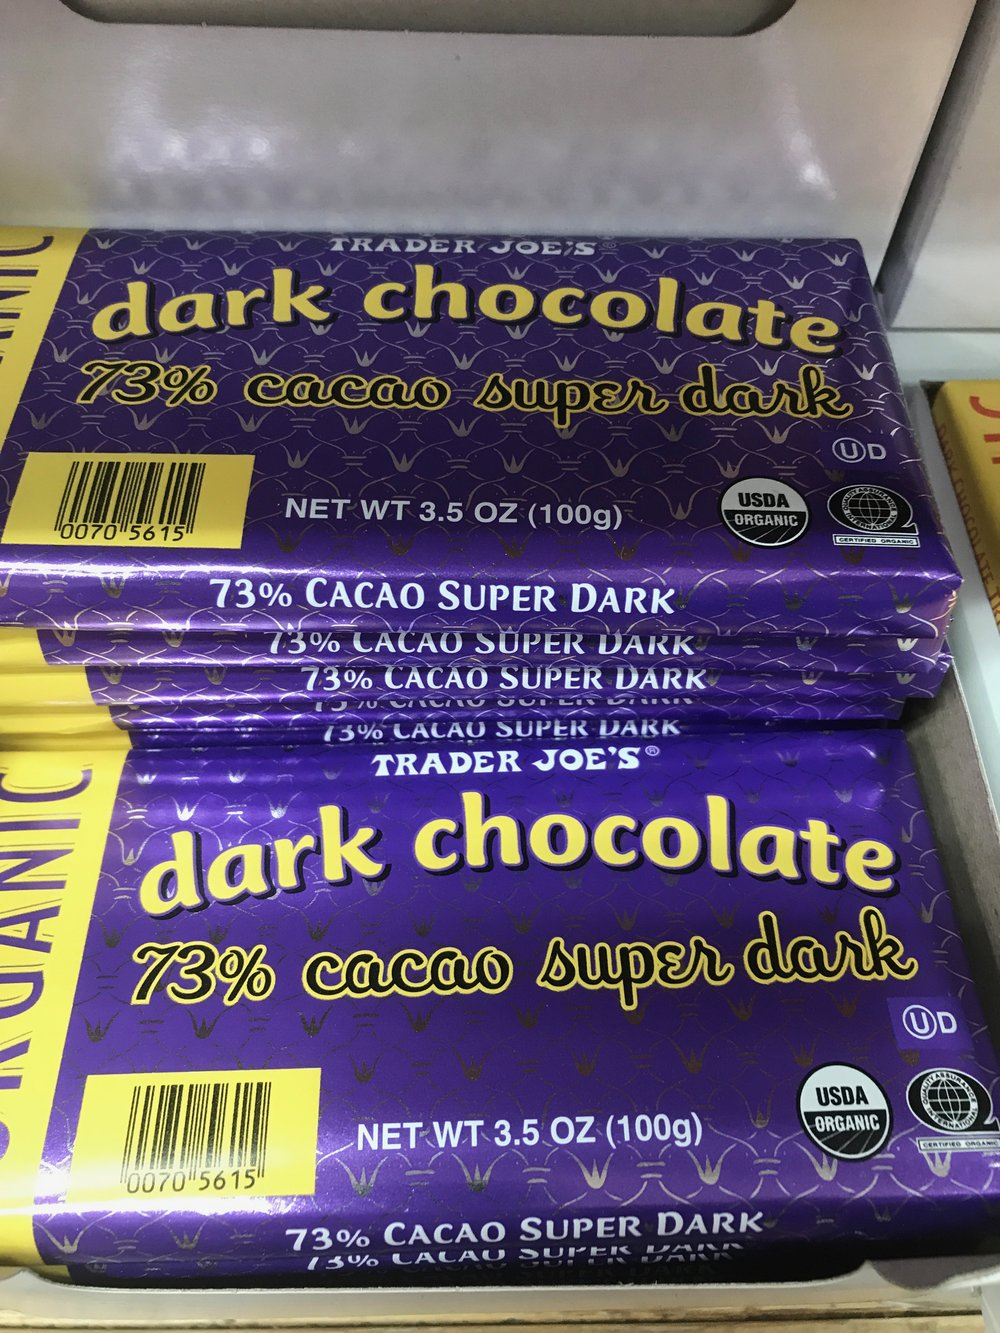 Soy-free chocolate can be easy to find at Trader Joe's!